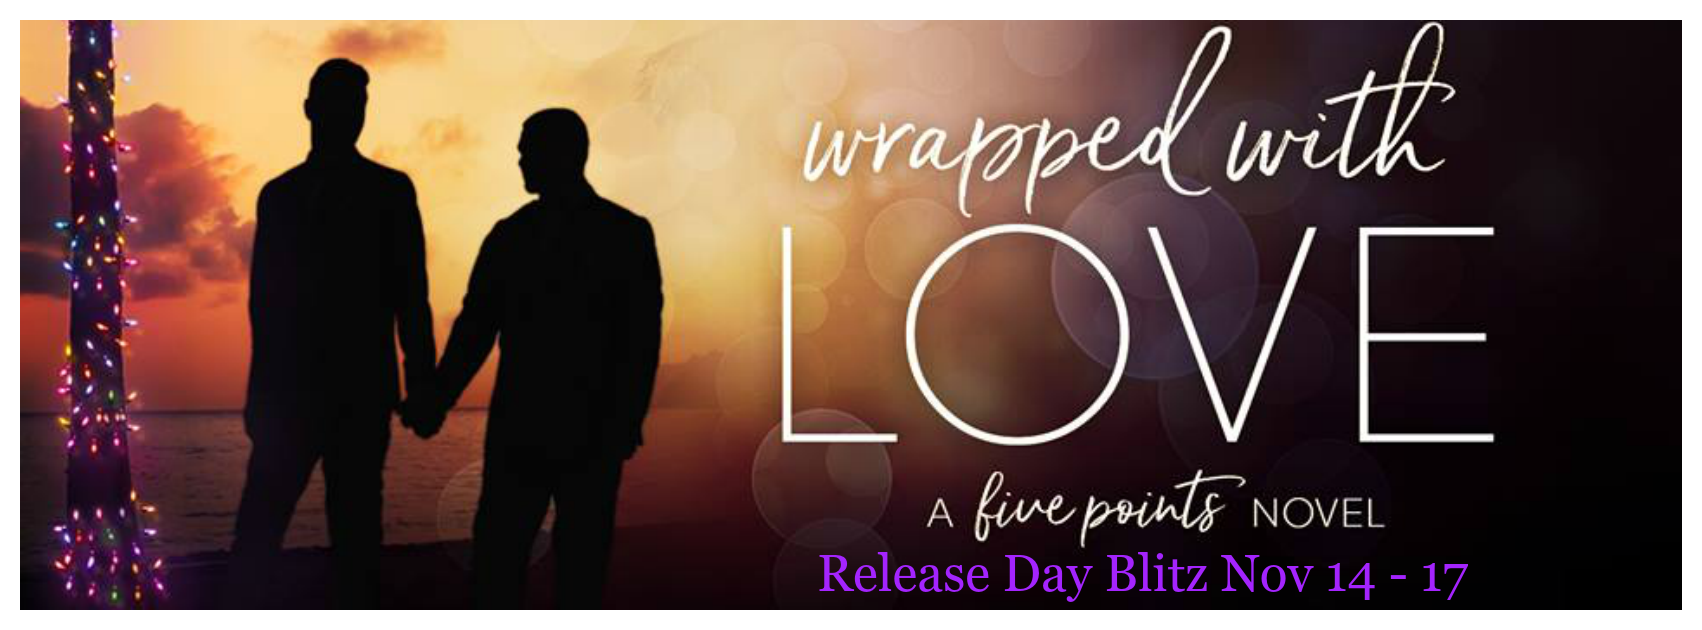 Get Wrapped with Love by Beth Bolden on Amazon & Kindle Unlimited